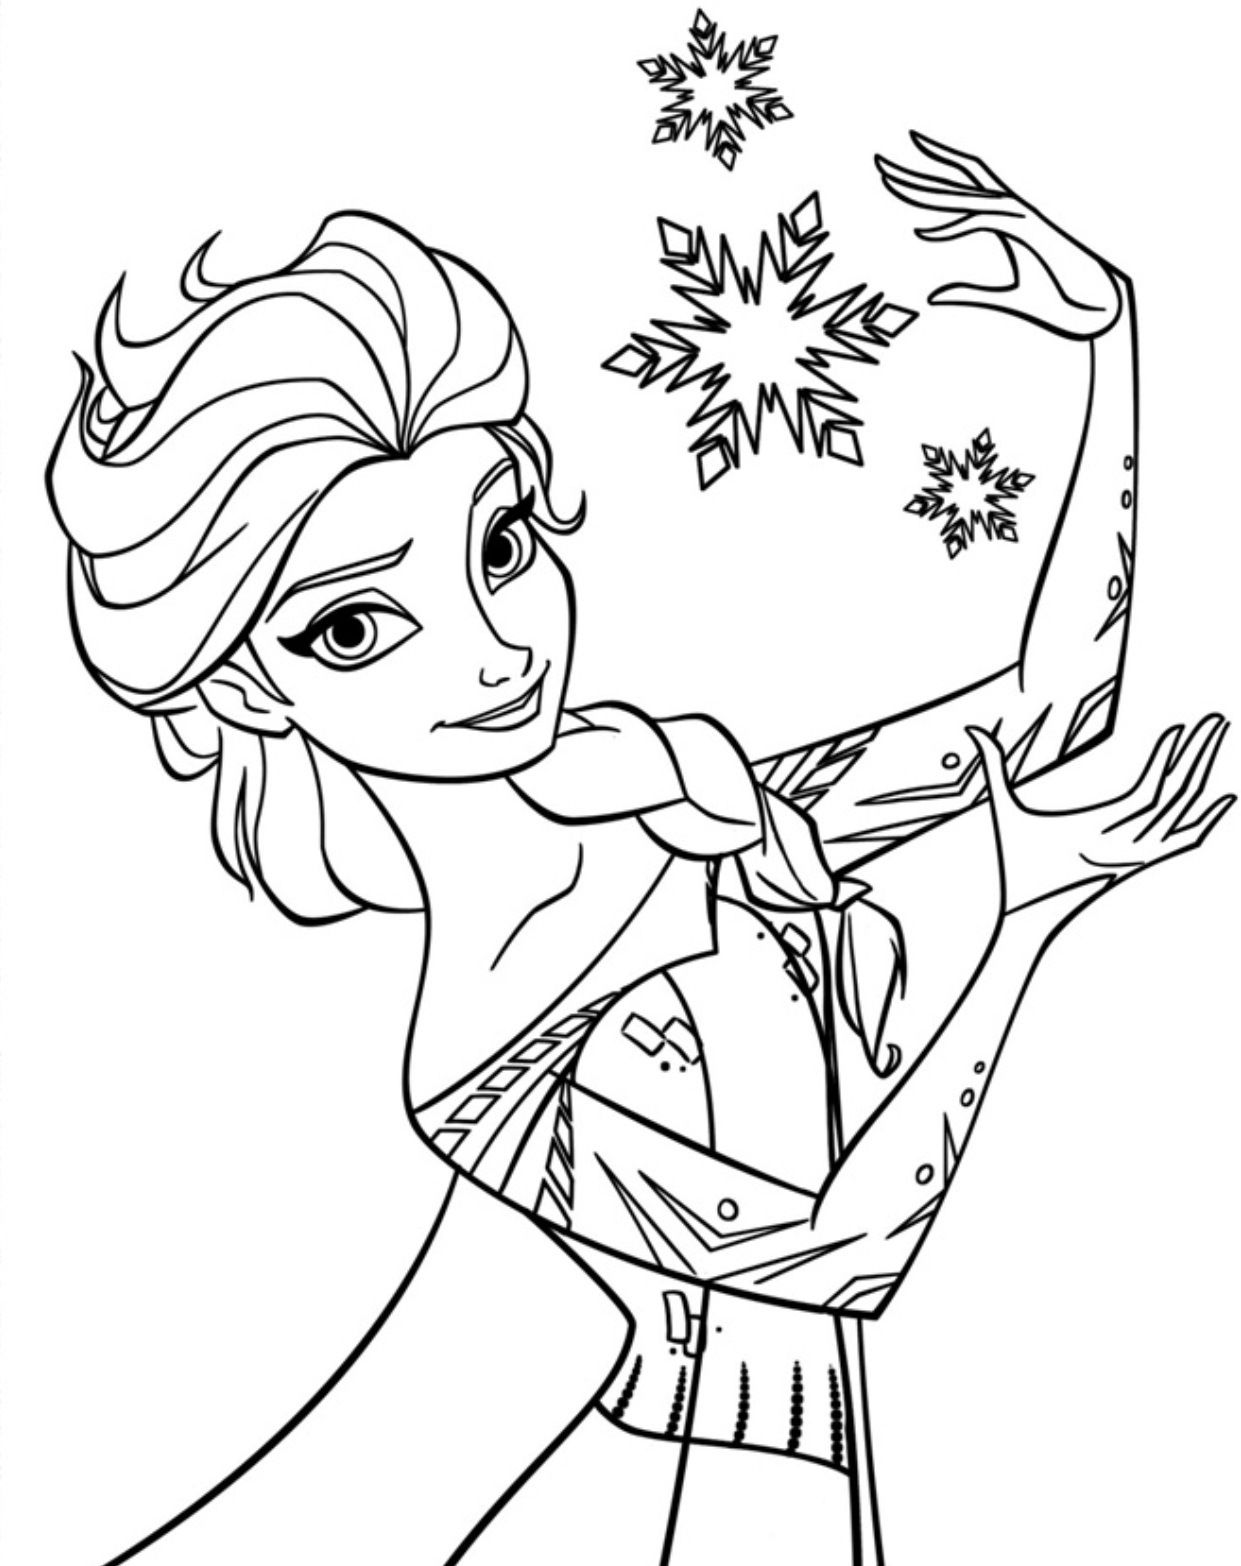 Pin By Jacqueline Kilroy On Frozen Frozen Coloring Pages